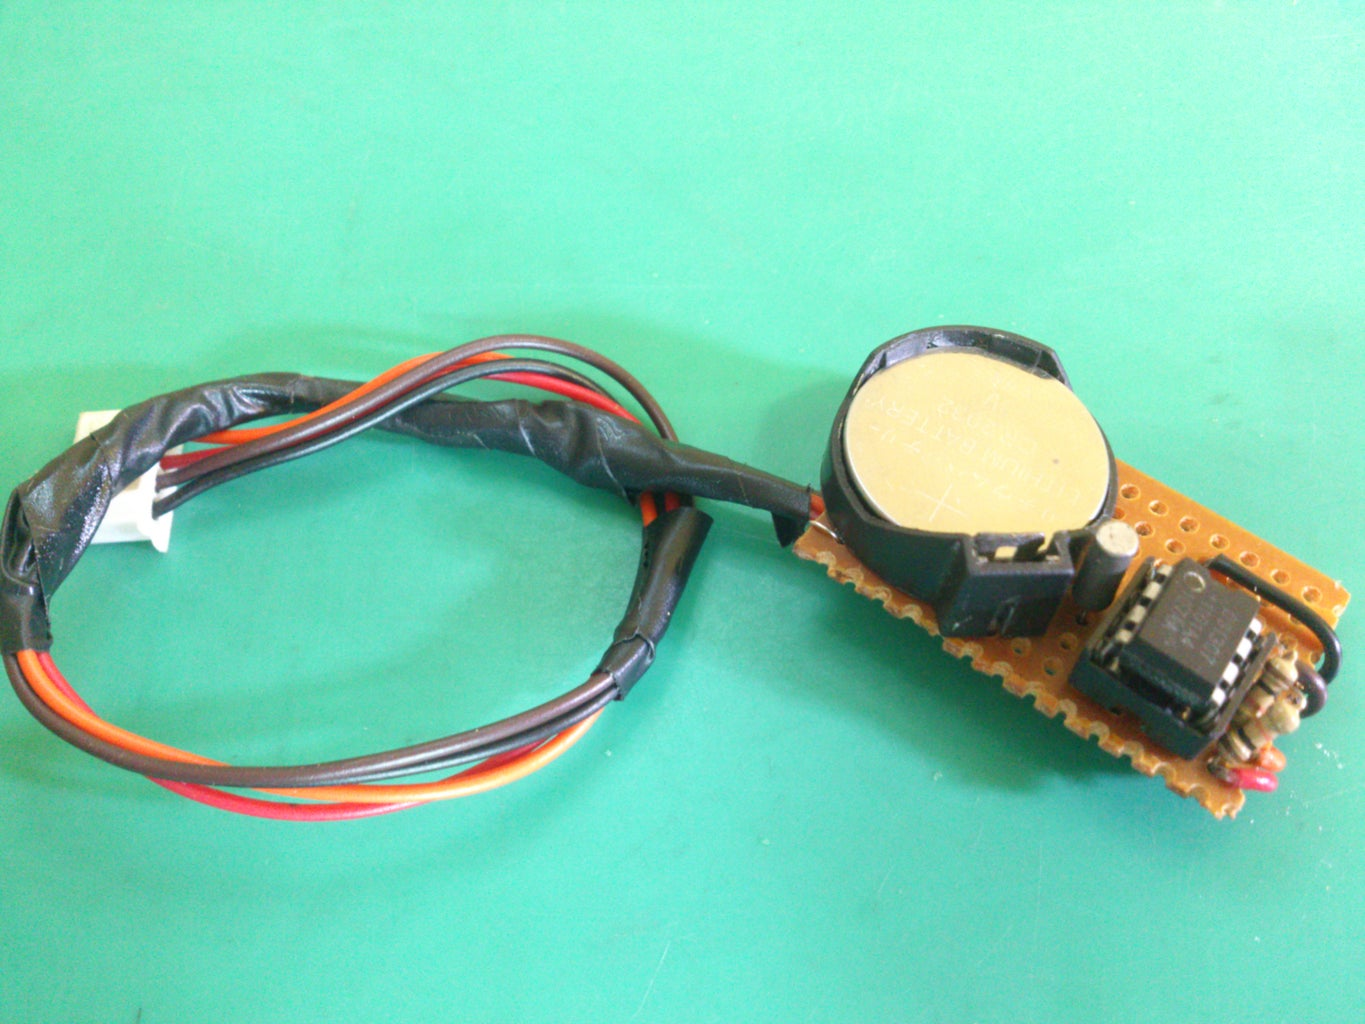 Assembly and Soldering - 2